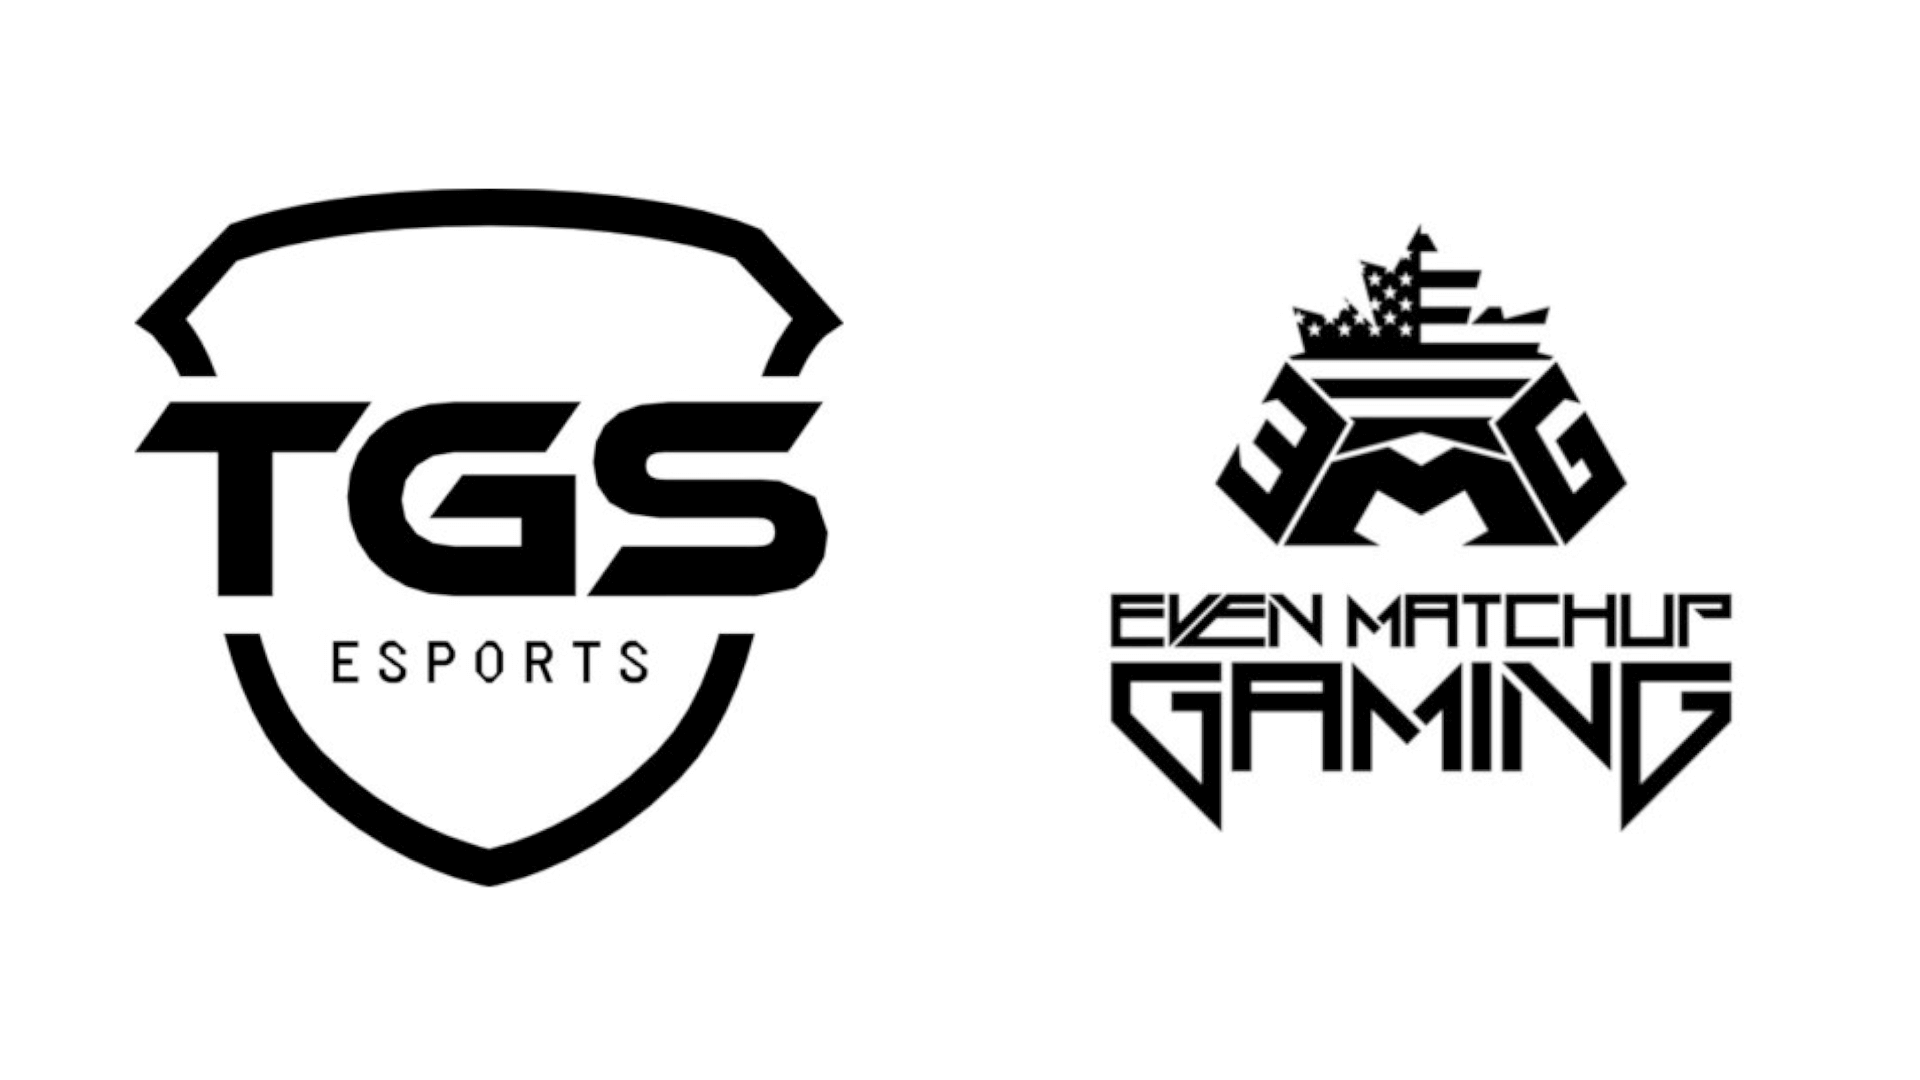 The Gaming Stadium Acquires Even Matchup for almost $900k